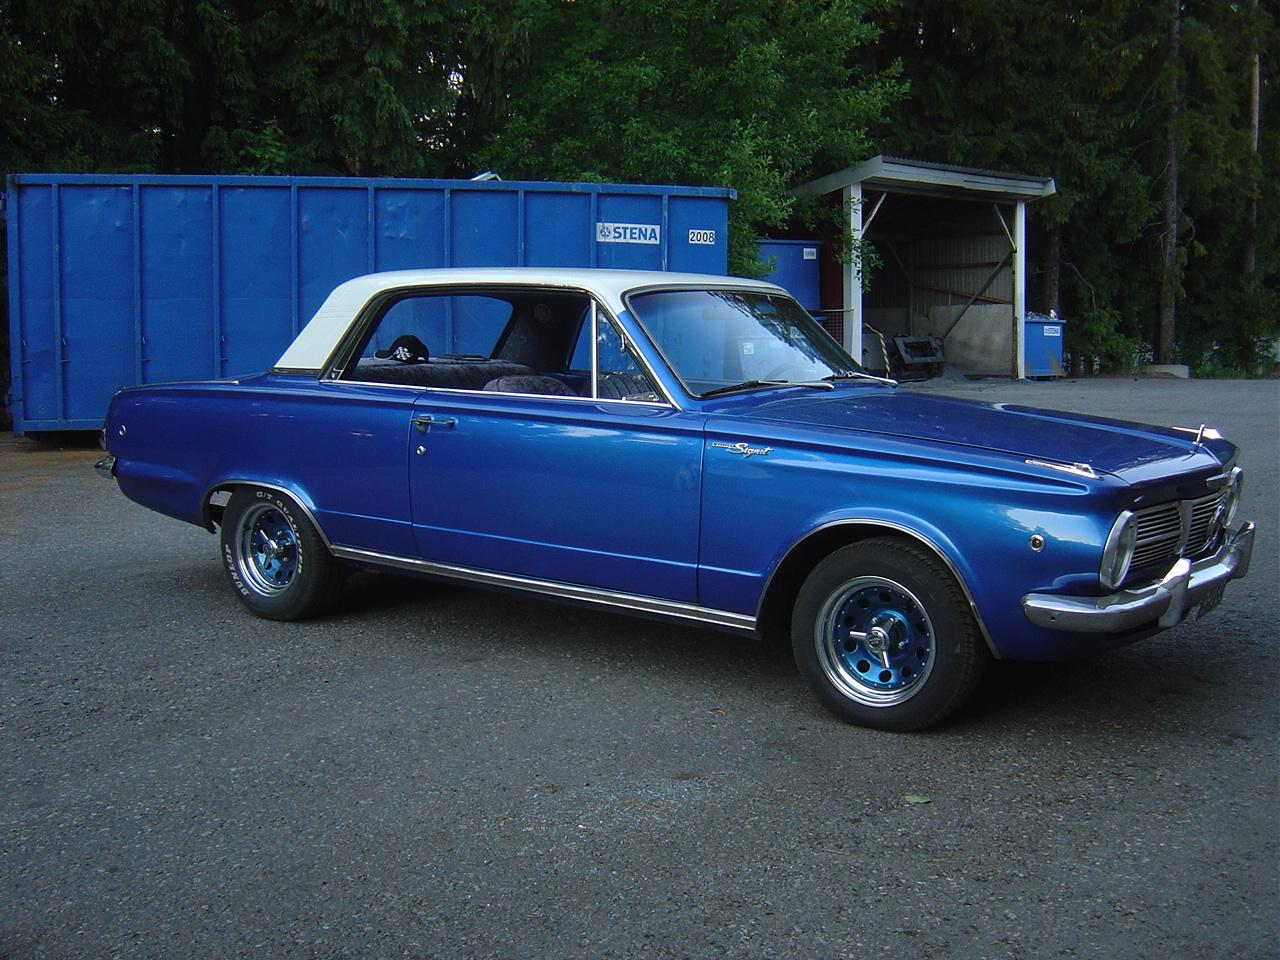 Signet-65 1965 Plymouth Valiant